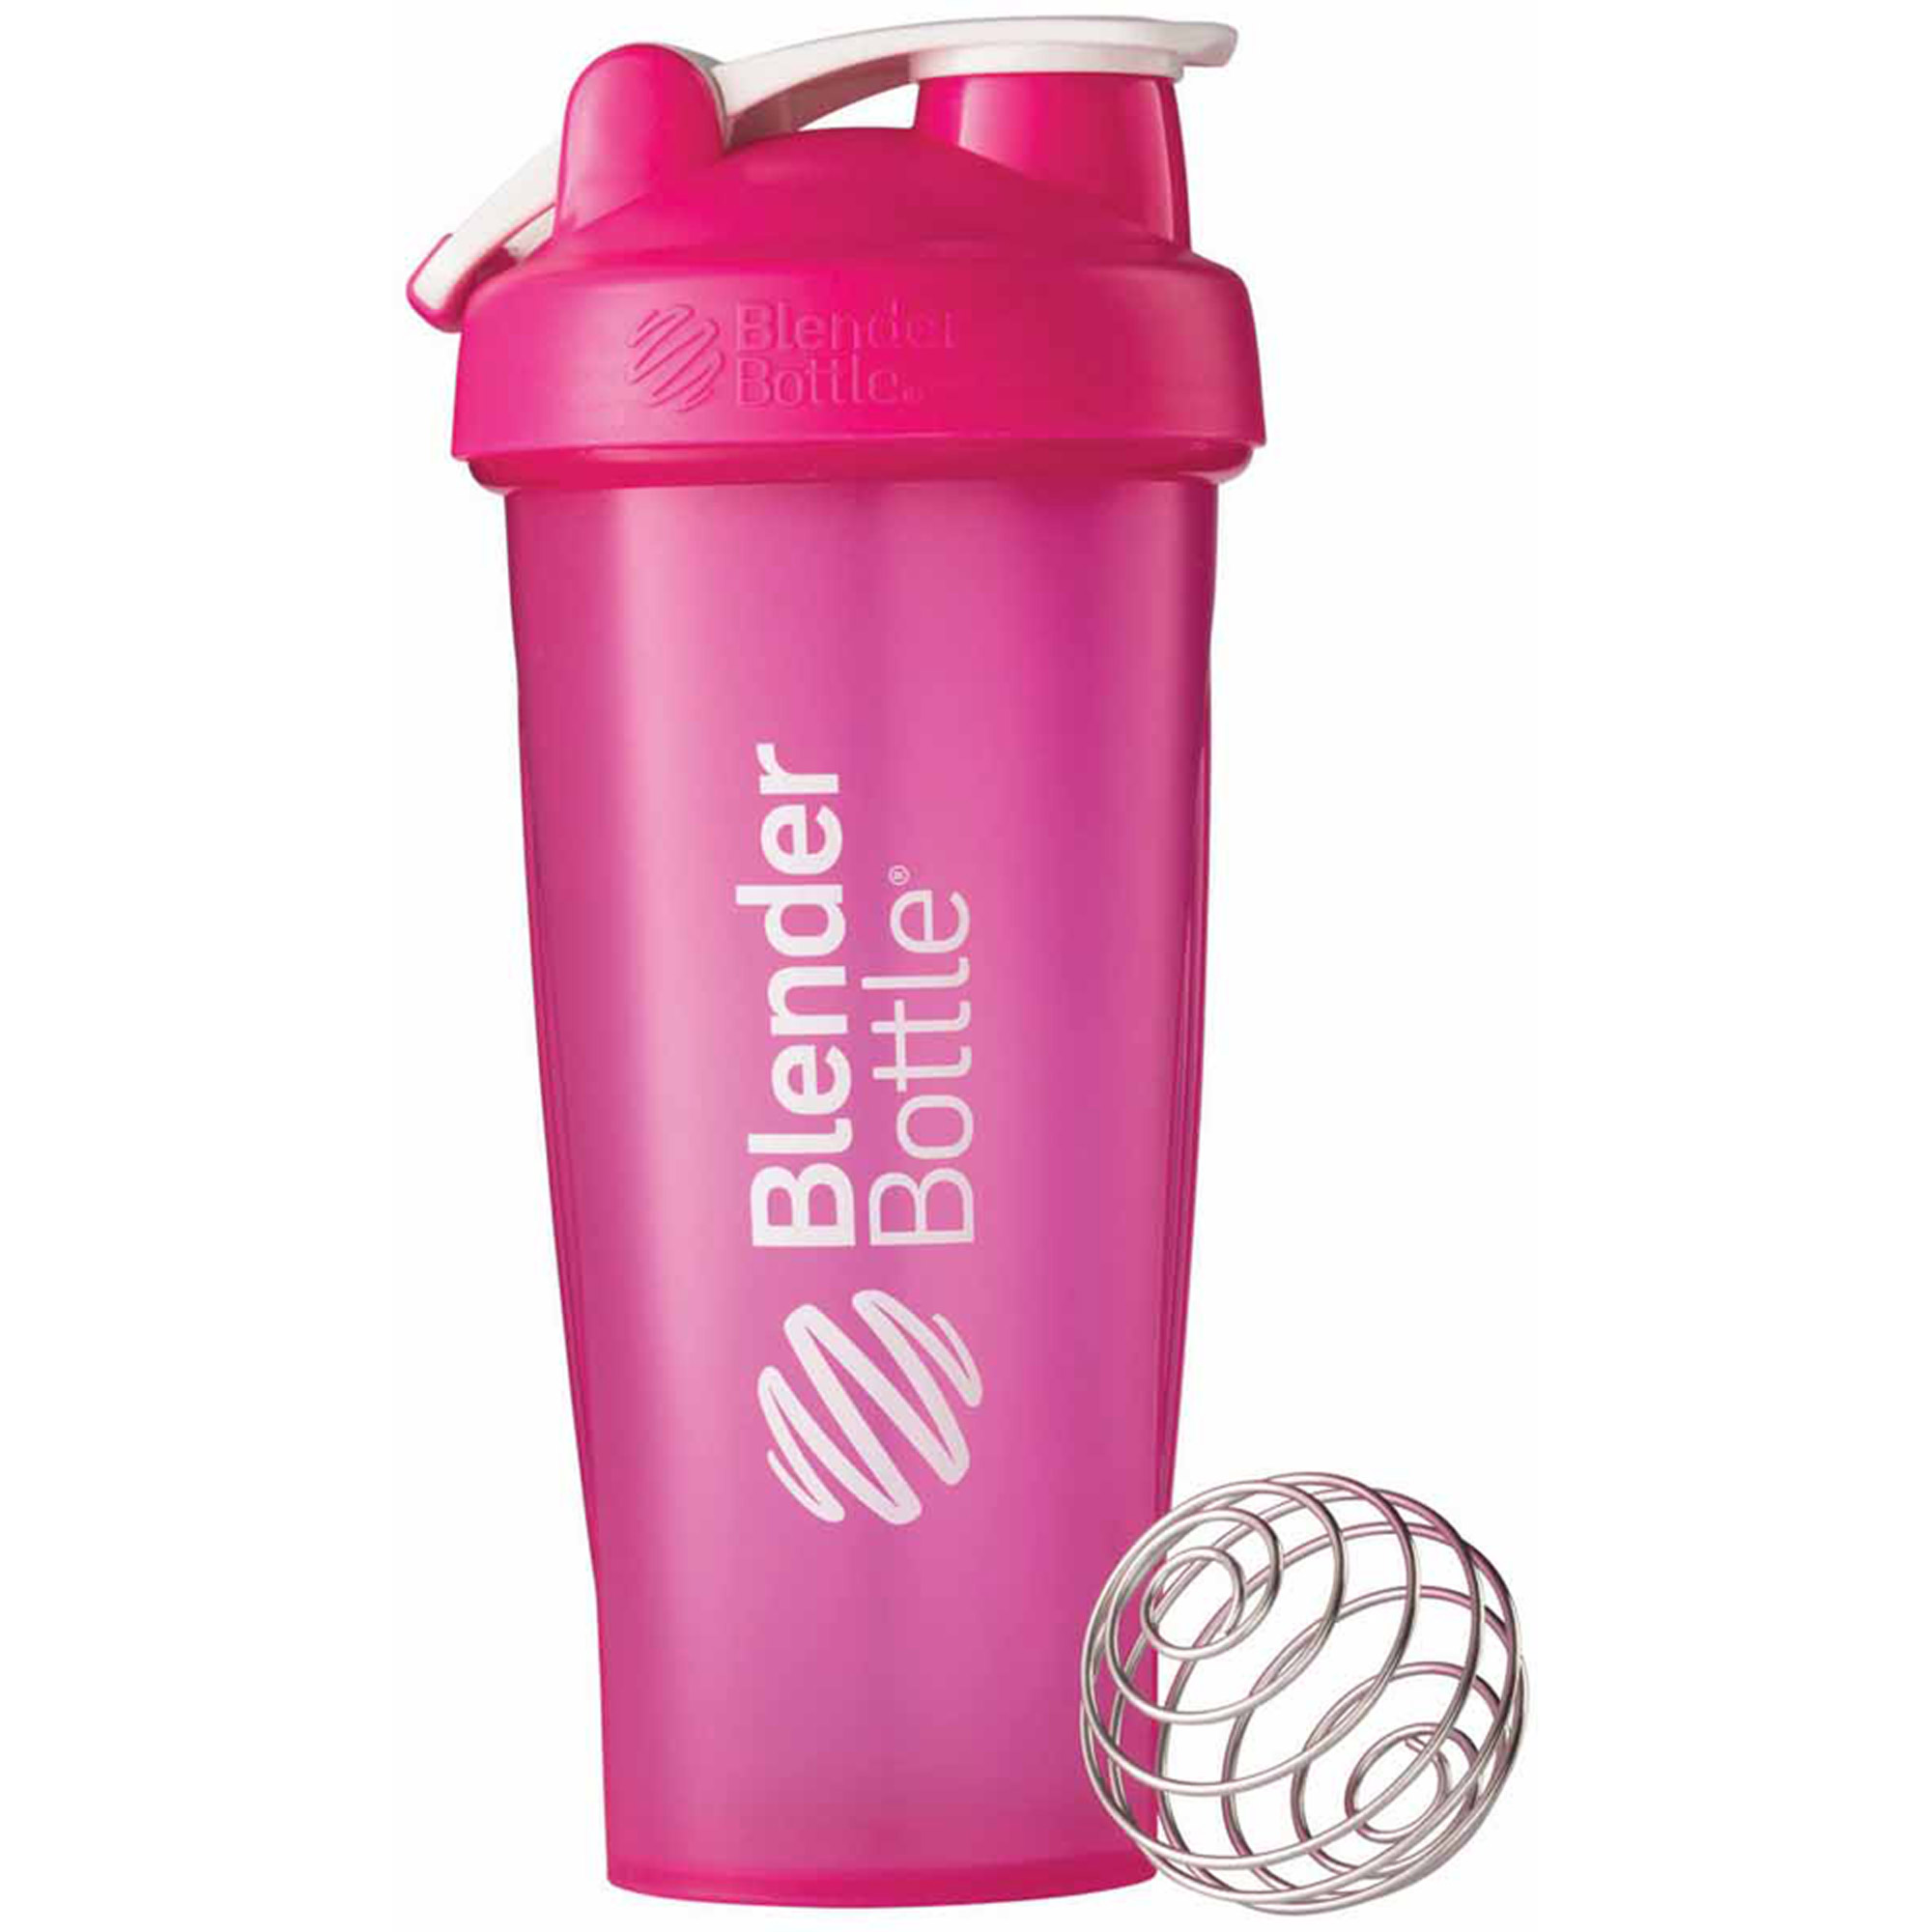 BlenderBottle 28-Ounce Classic Bottle with Loop, Full Color Pink